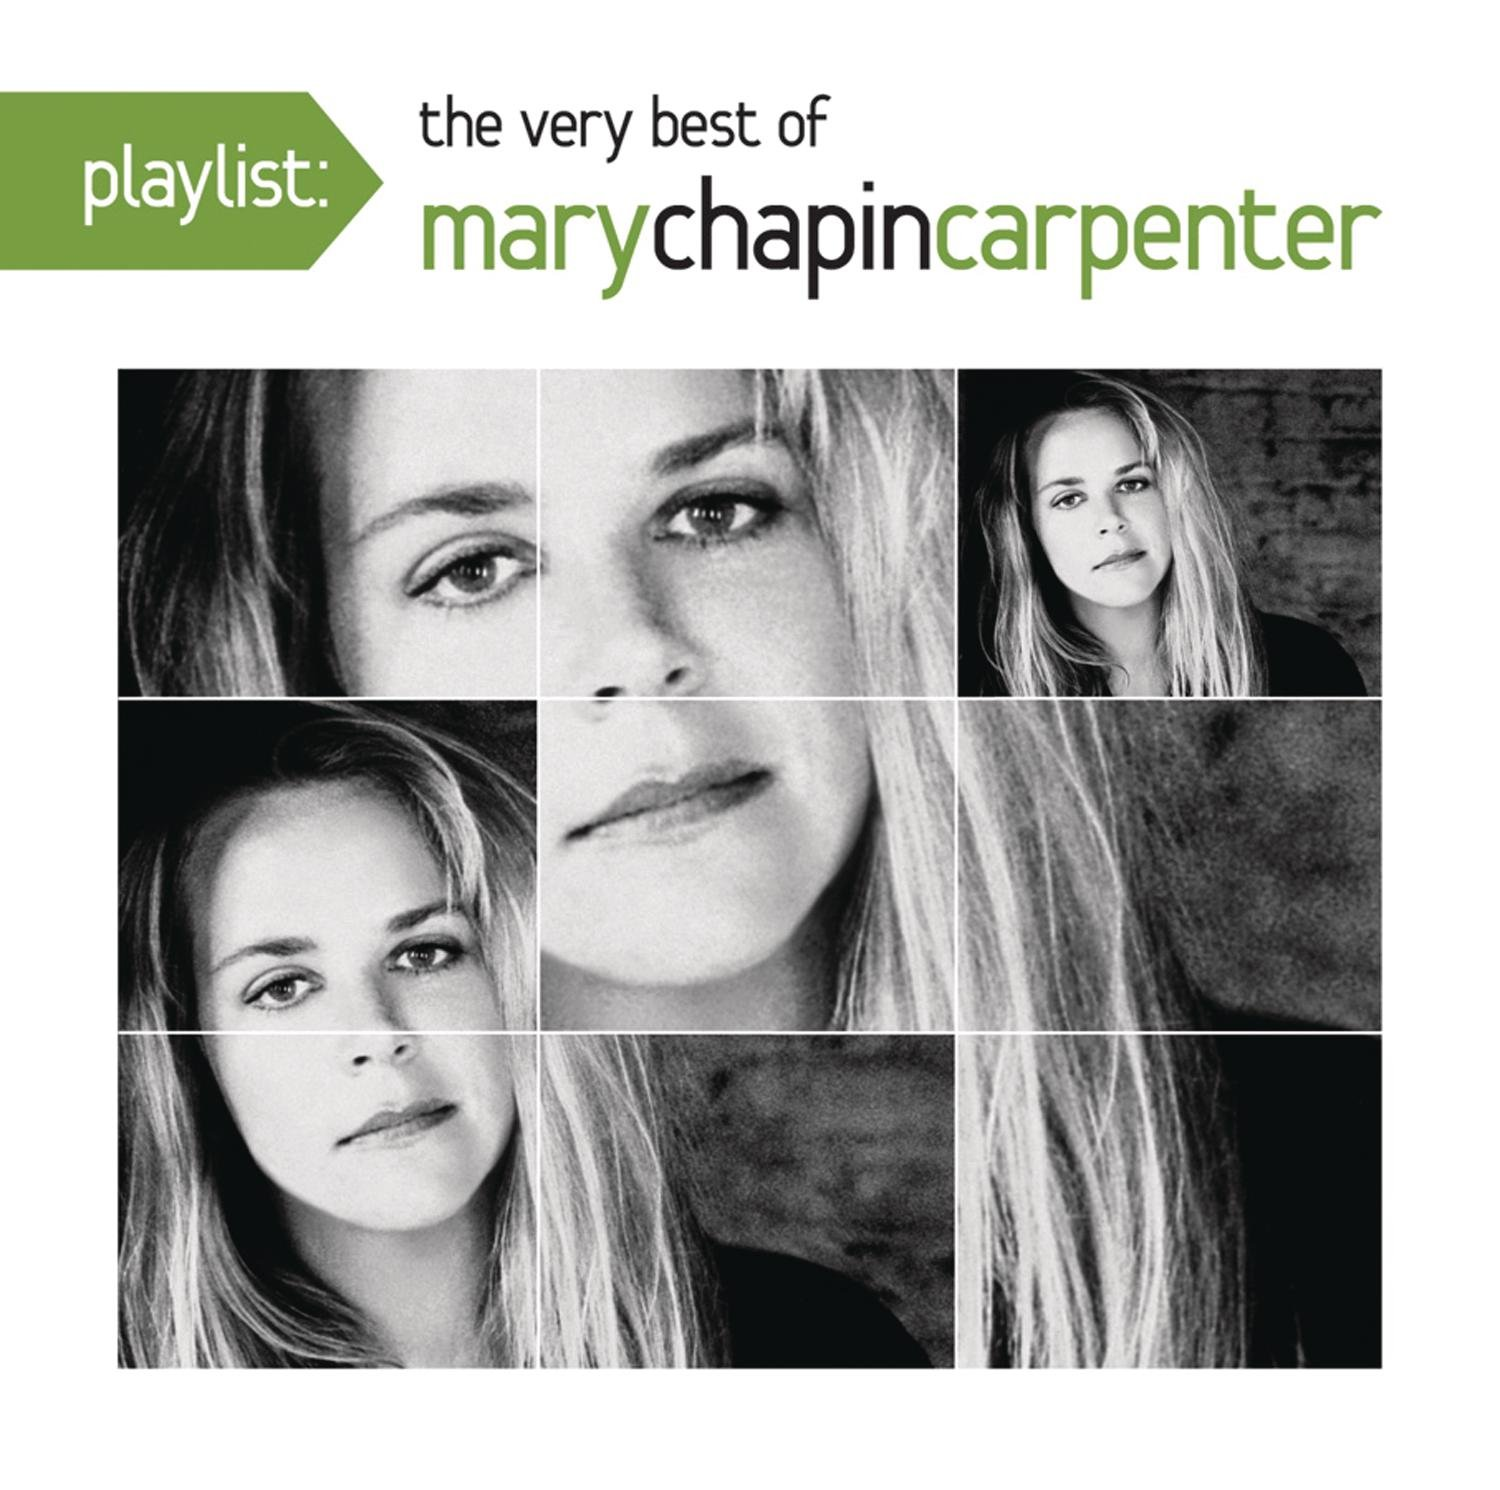 Playlist: The Very Best Of Mary Chapin Carpenter